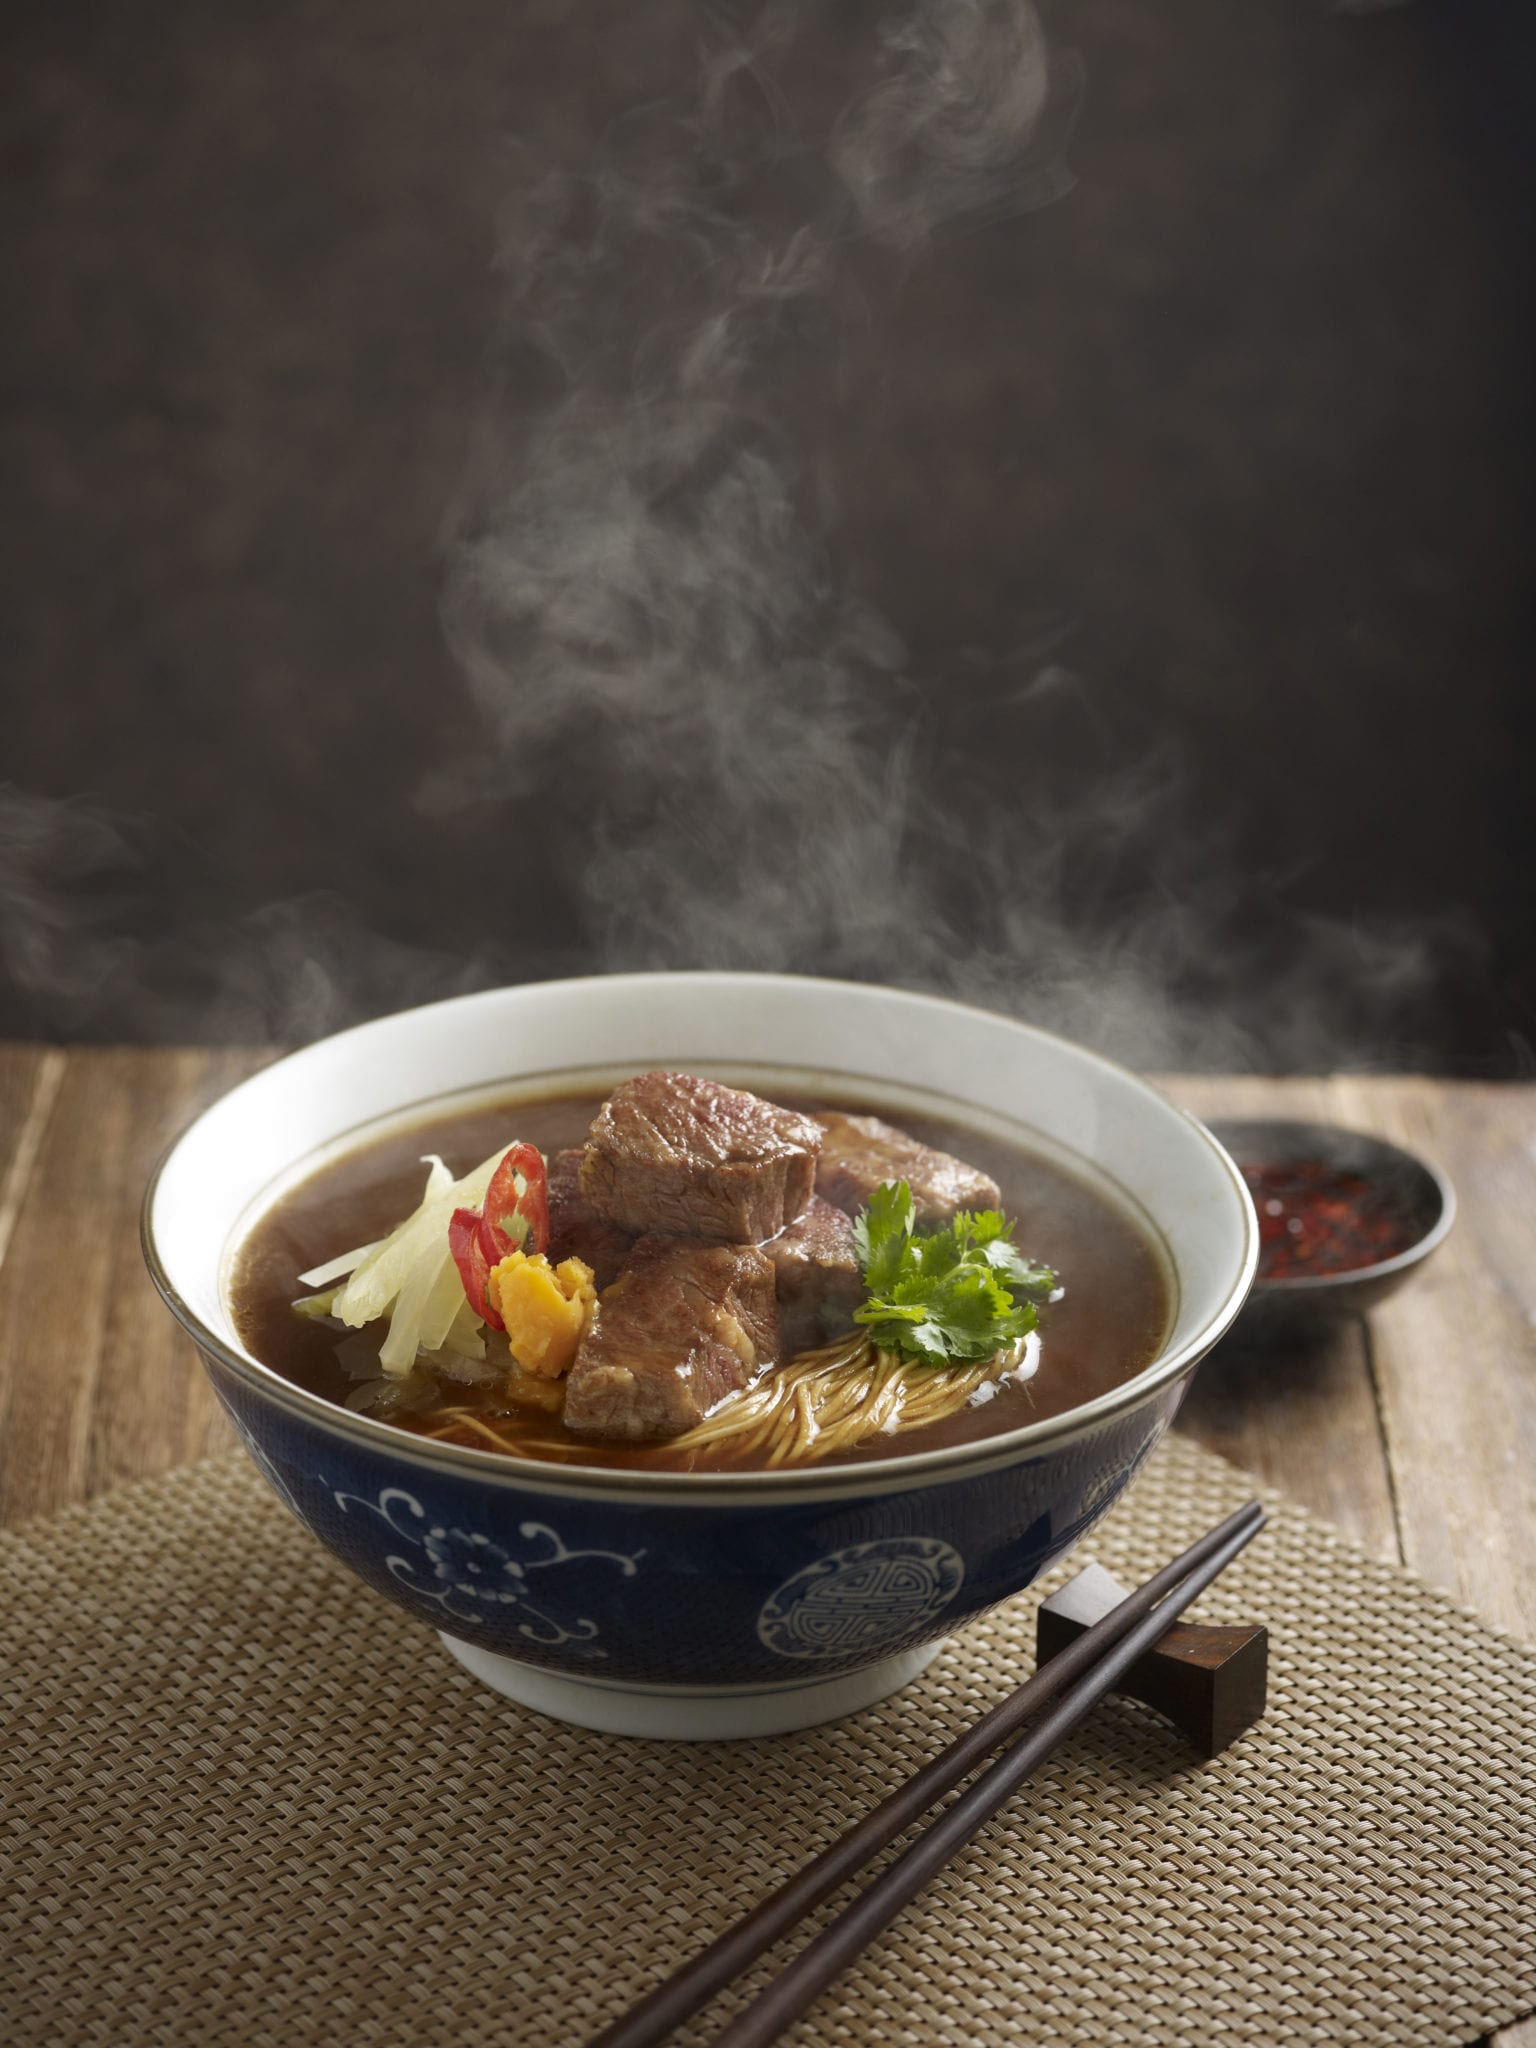 hot bowl of noodles with beef broth and beef cud's